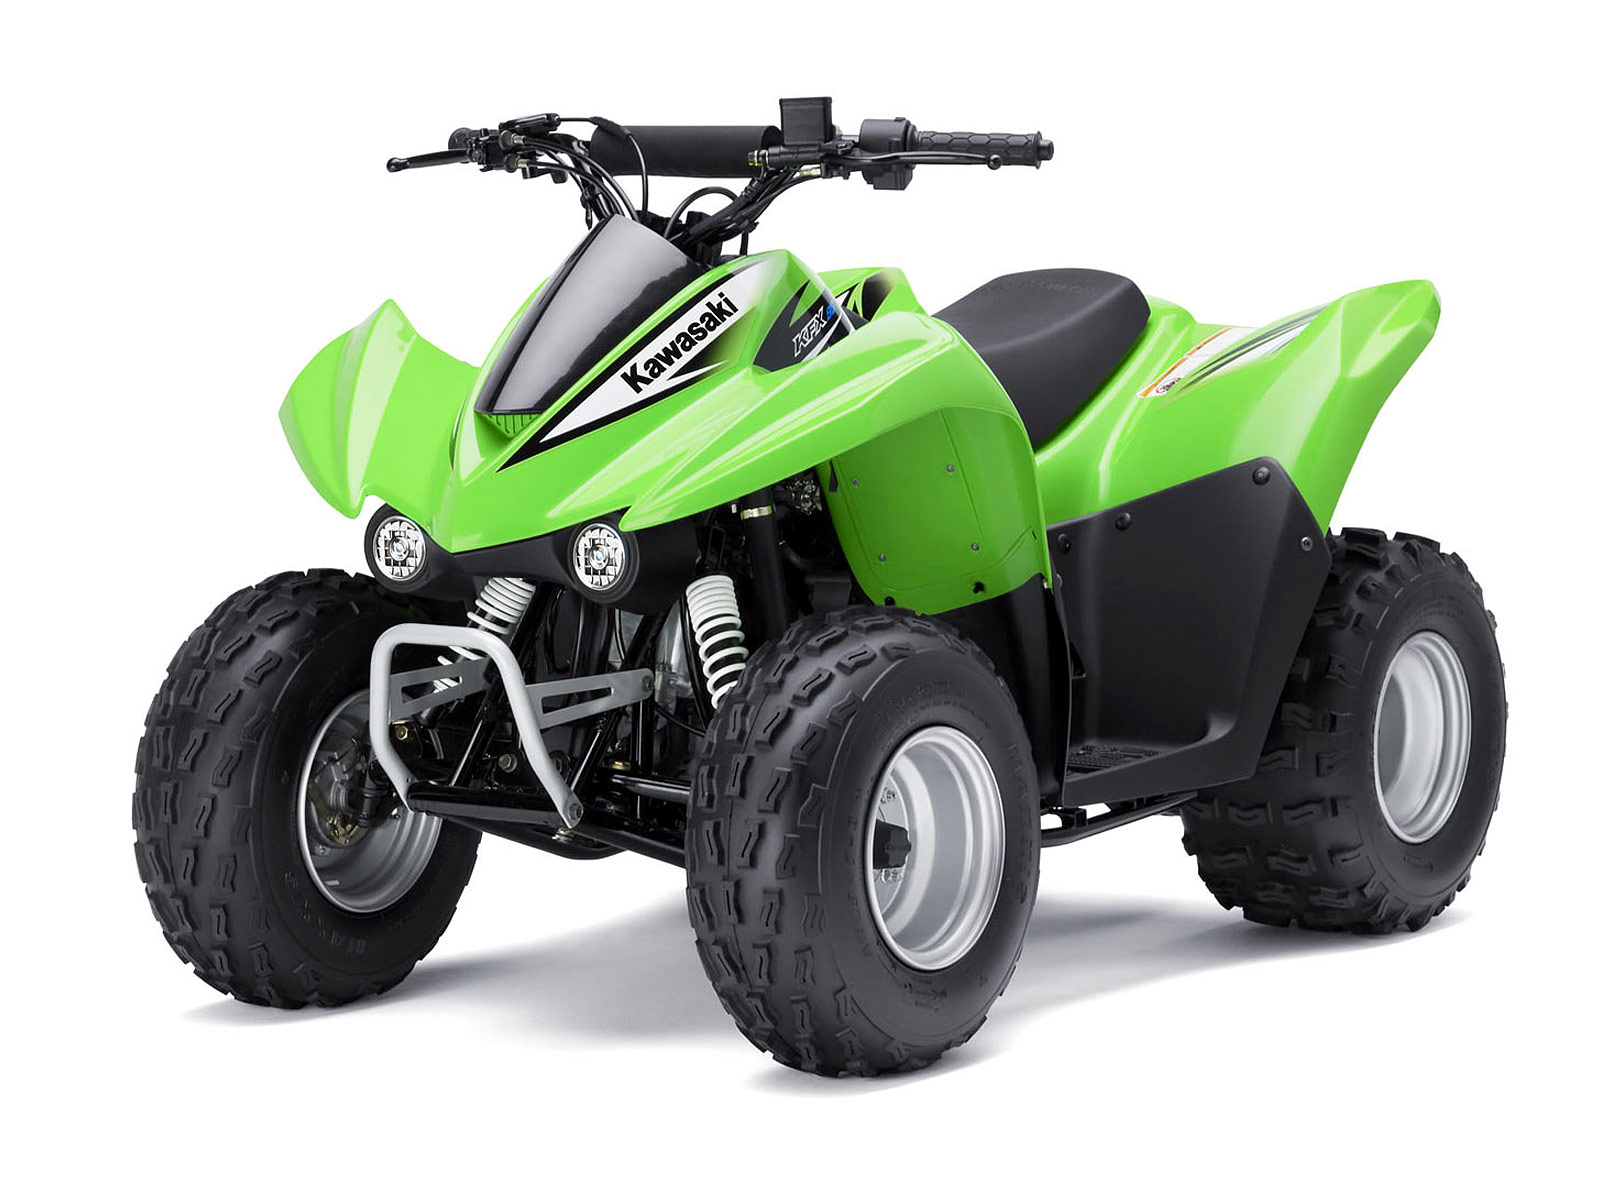 Automatic Transmission Motorcycle >> 2011 KAWASAKI KFX 90 pictures | ATV Accident lawyers info